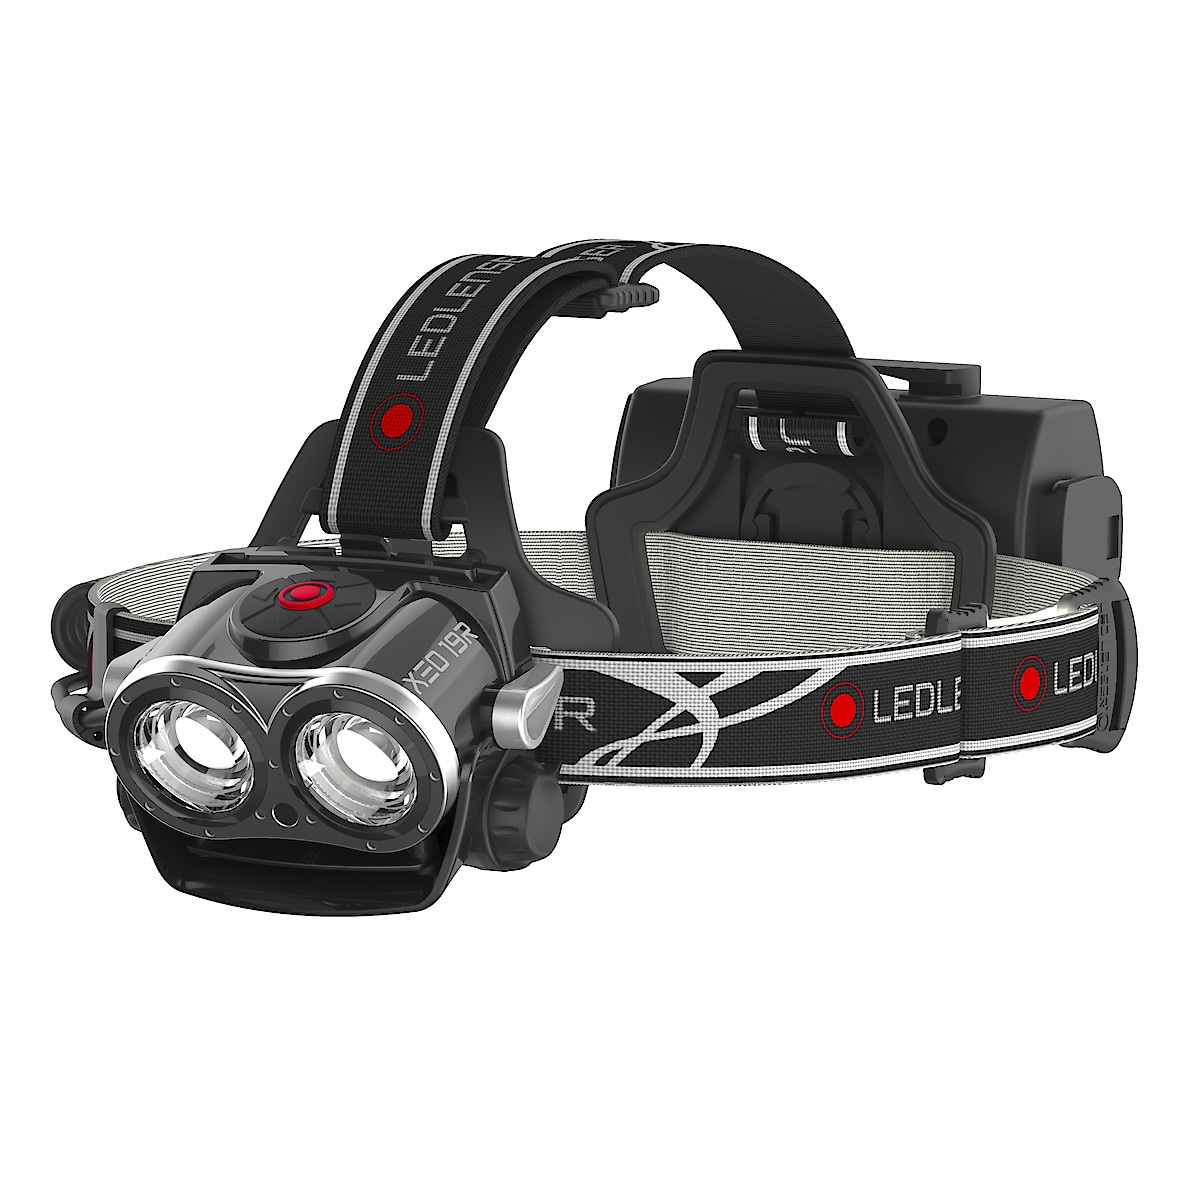 LED Lenser XEO19R Head Torch